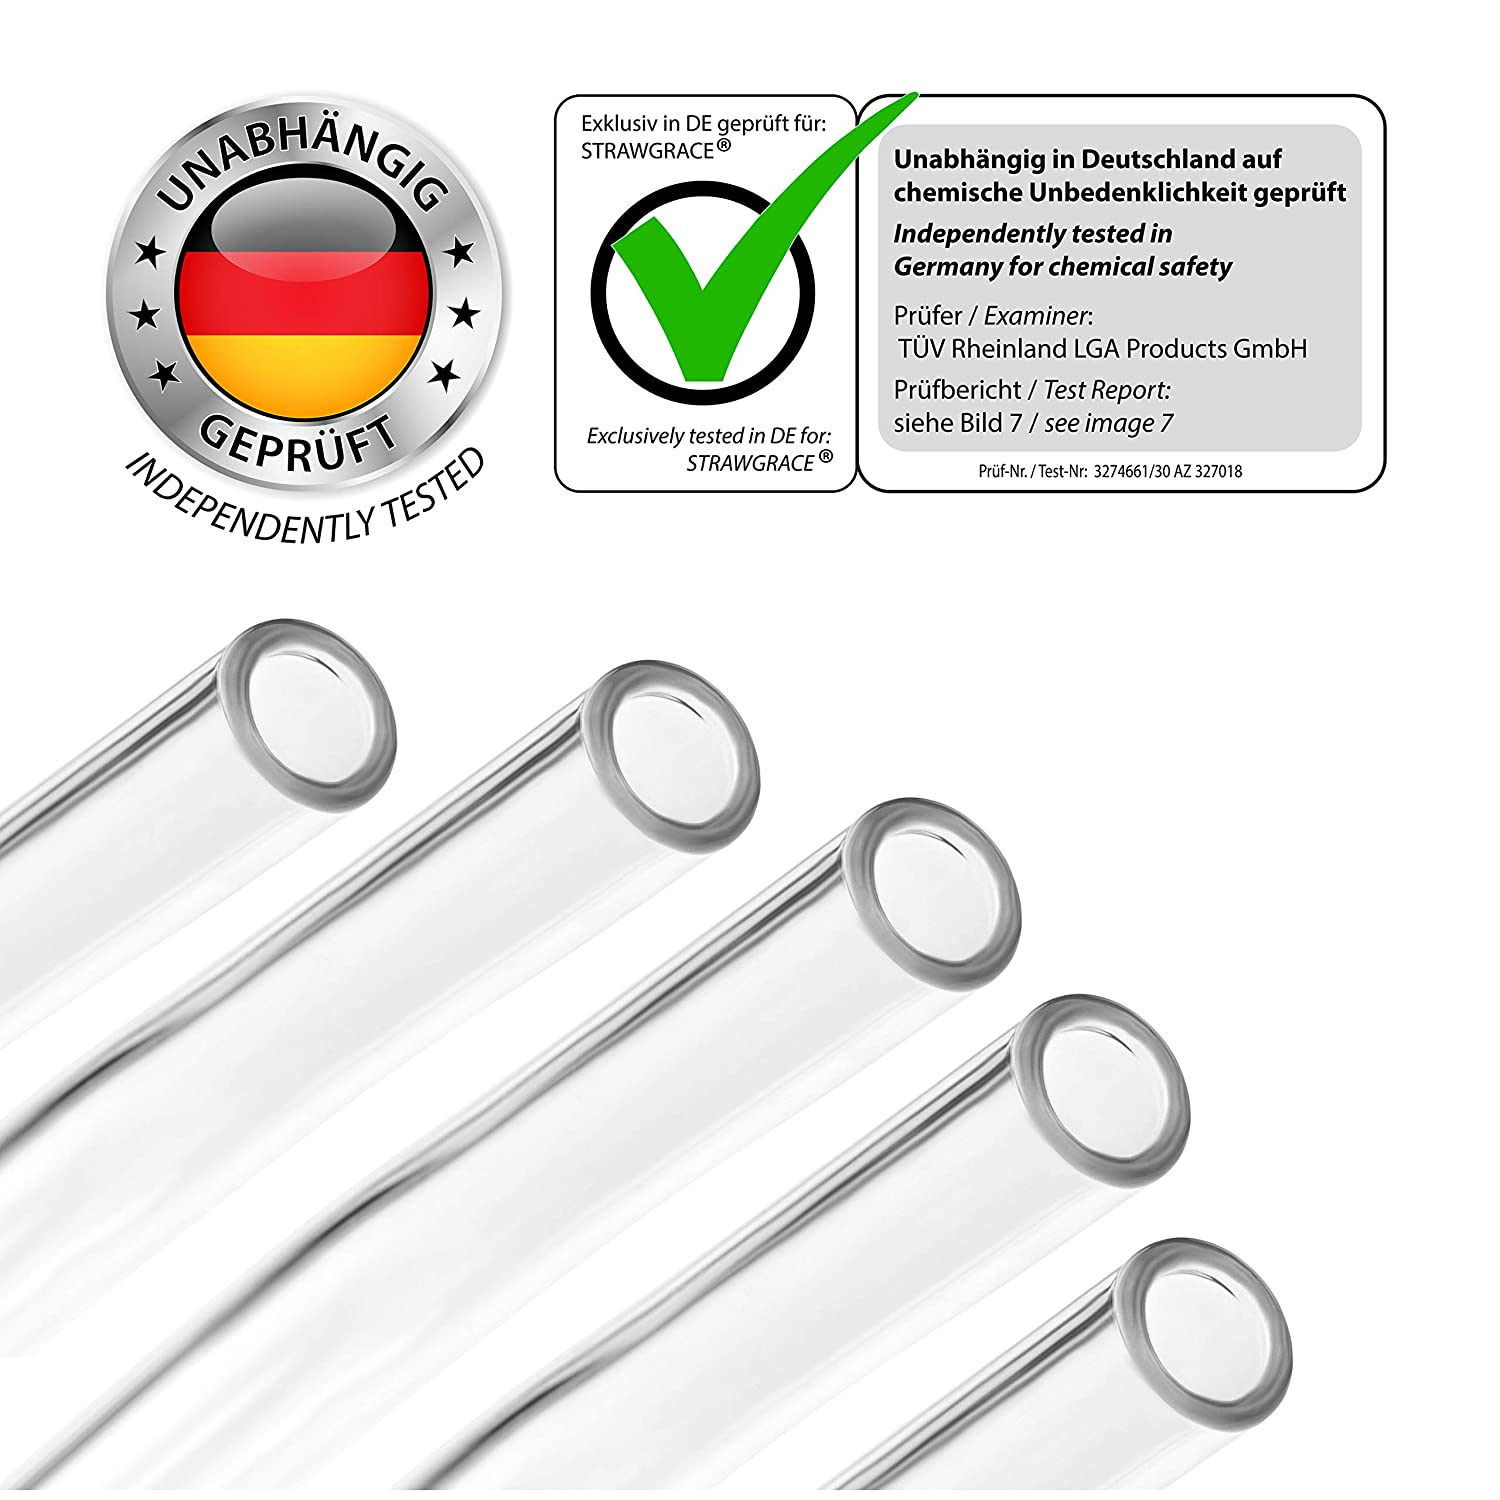 Reusable Free of BPA StrawGrace/® Handmade Glass Straws Bent - 23 cm x 10 mm independently tested in DE Glass Drinking Straws Healthy Set of 5 with Cleaning Brush Ideal for Smoothie etc